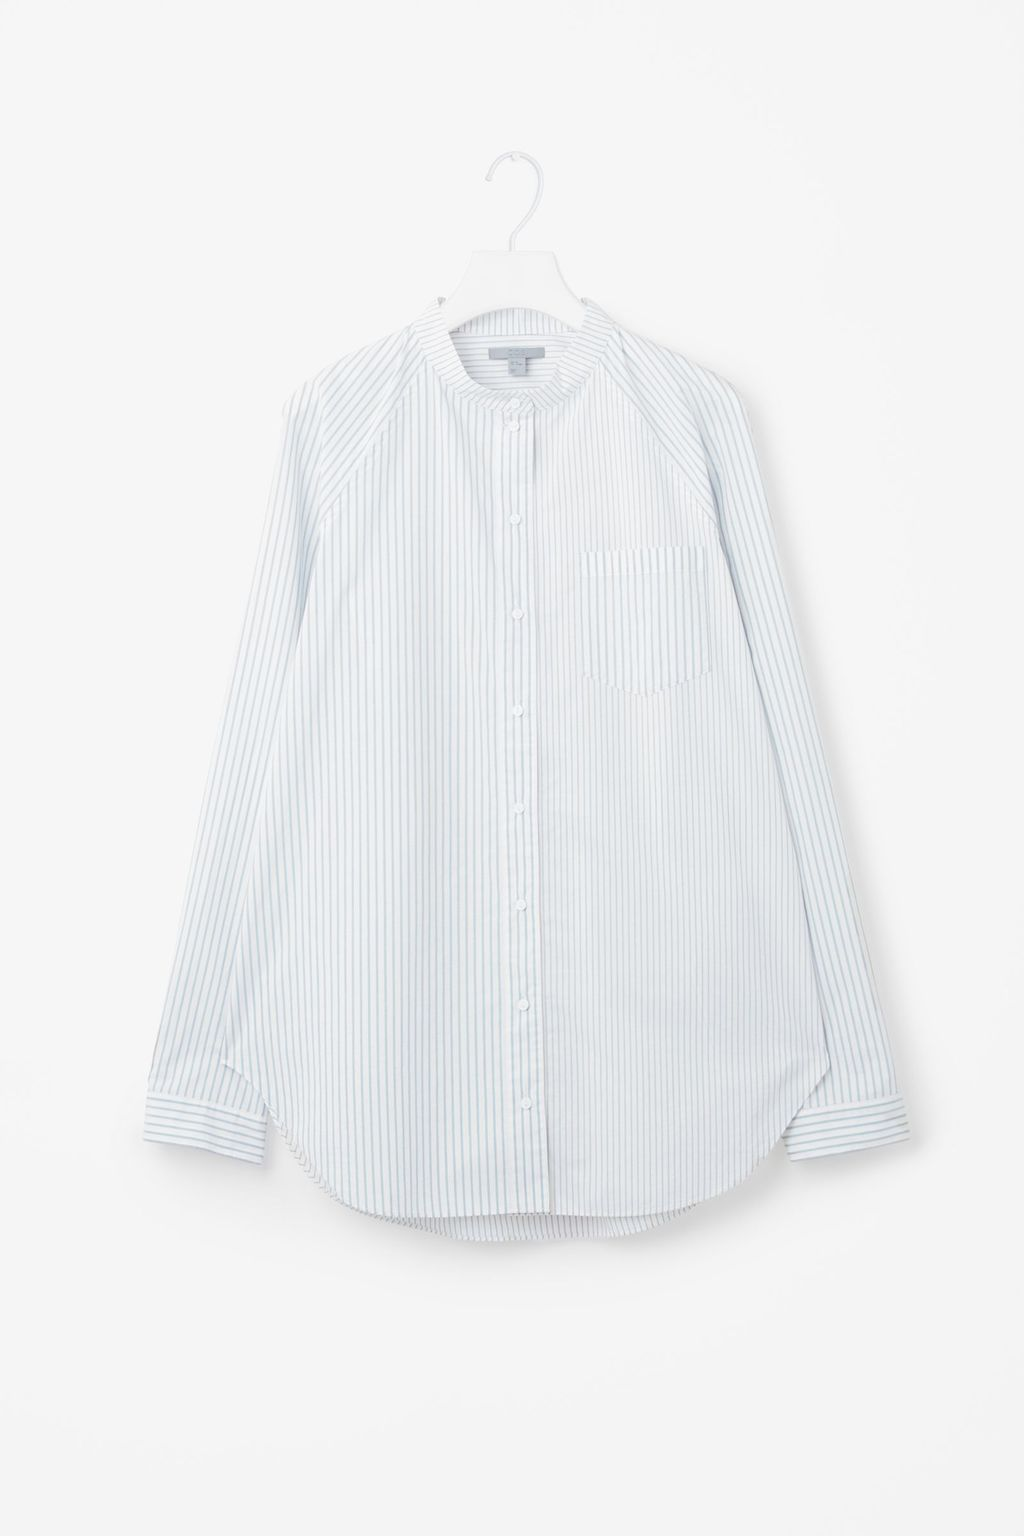 Striped Raglan Sleeved Grandad Shirt - length: below the bottom; style: shirt; pattern: pinstripe; predominant colour: pale blue; occasions: casual; neckline: collarstand; fibres: cotton - 100%; fit: loose; sleeve length: long sleeve; sleeve style: standard; texture group: cotton feel fabrics; pattern type: fabric; pattern size: standard; season: s/s 2016; wardrobe: highlight